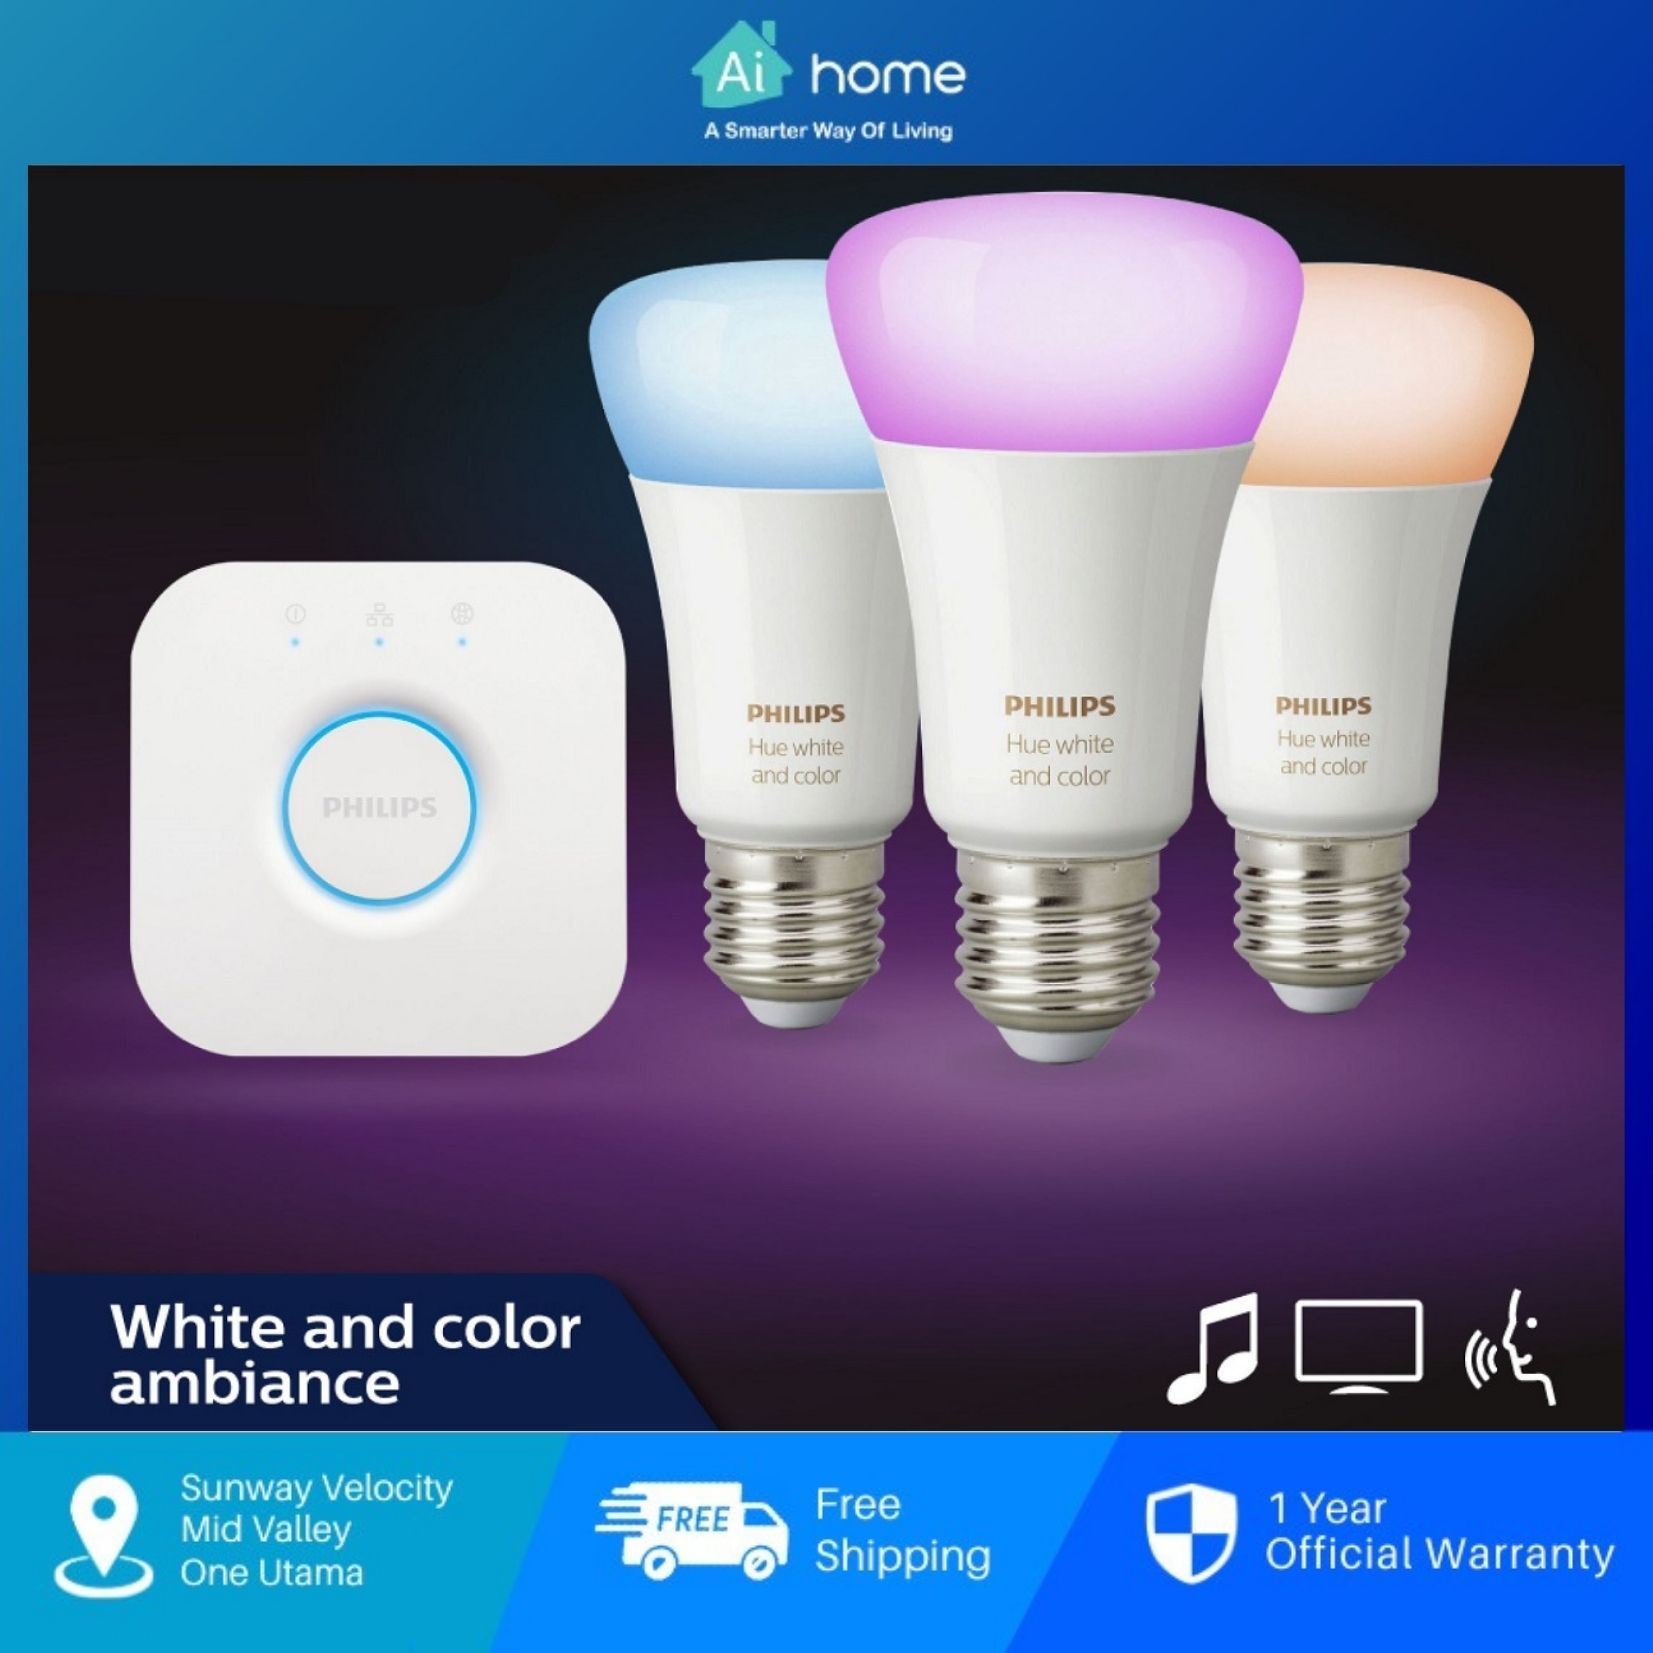 PHILIPS HUE Starter Kit (Light Bulb x3 + Bridge x1) (Support Apple Home Kit) with 2 Year Malaysia Warranty [ Ai Home ]